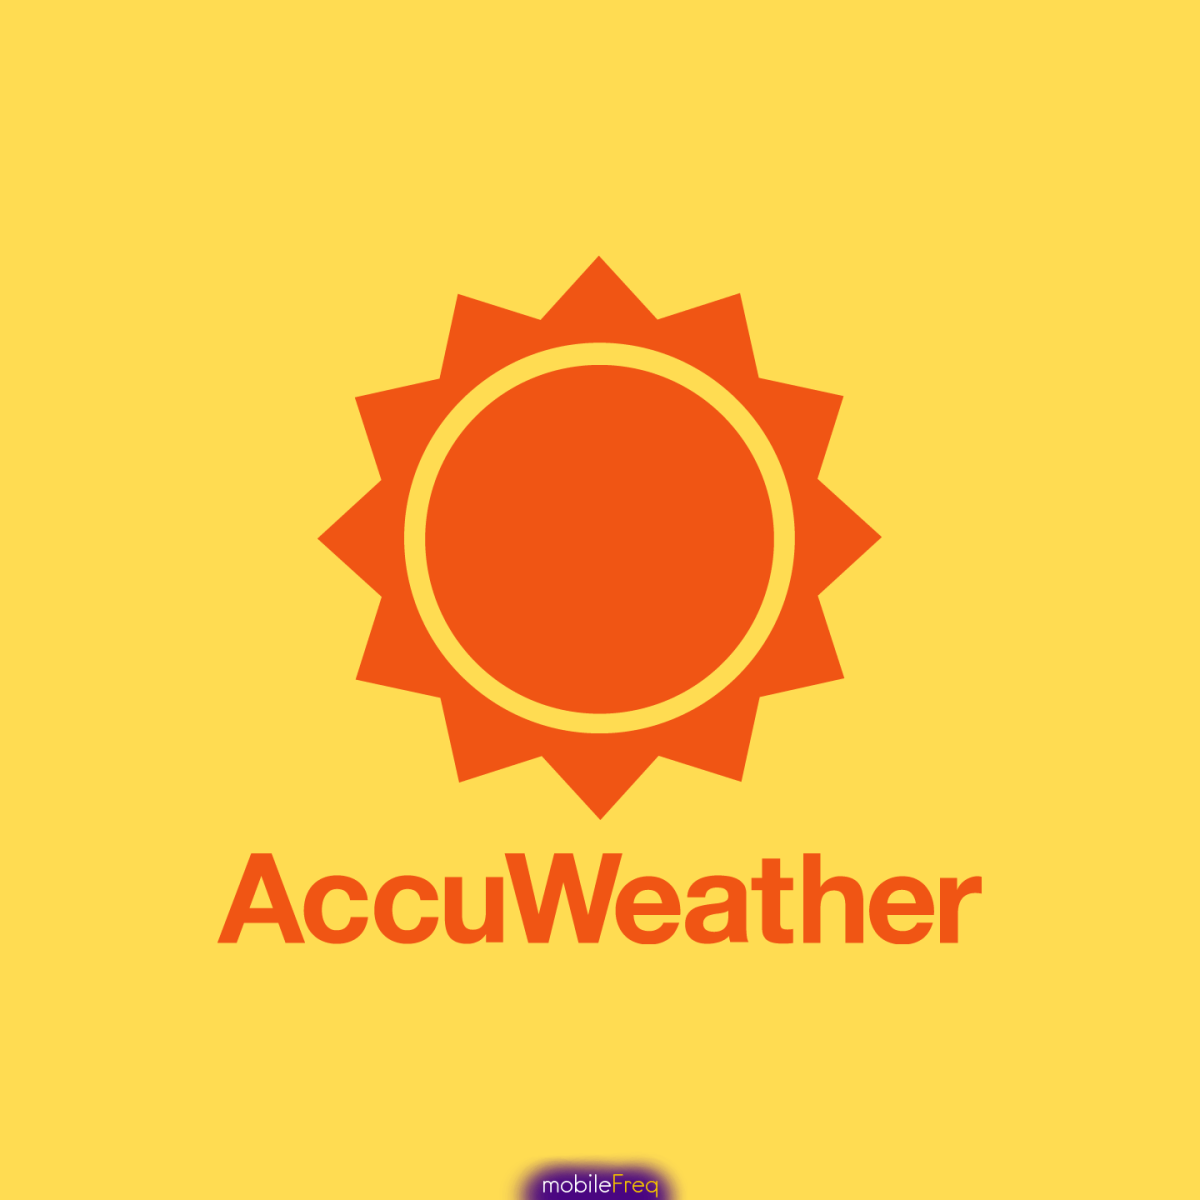 Tappday : AccuWeather